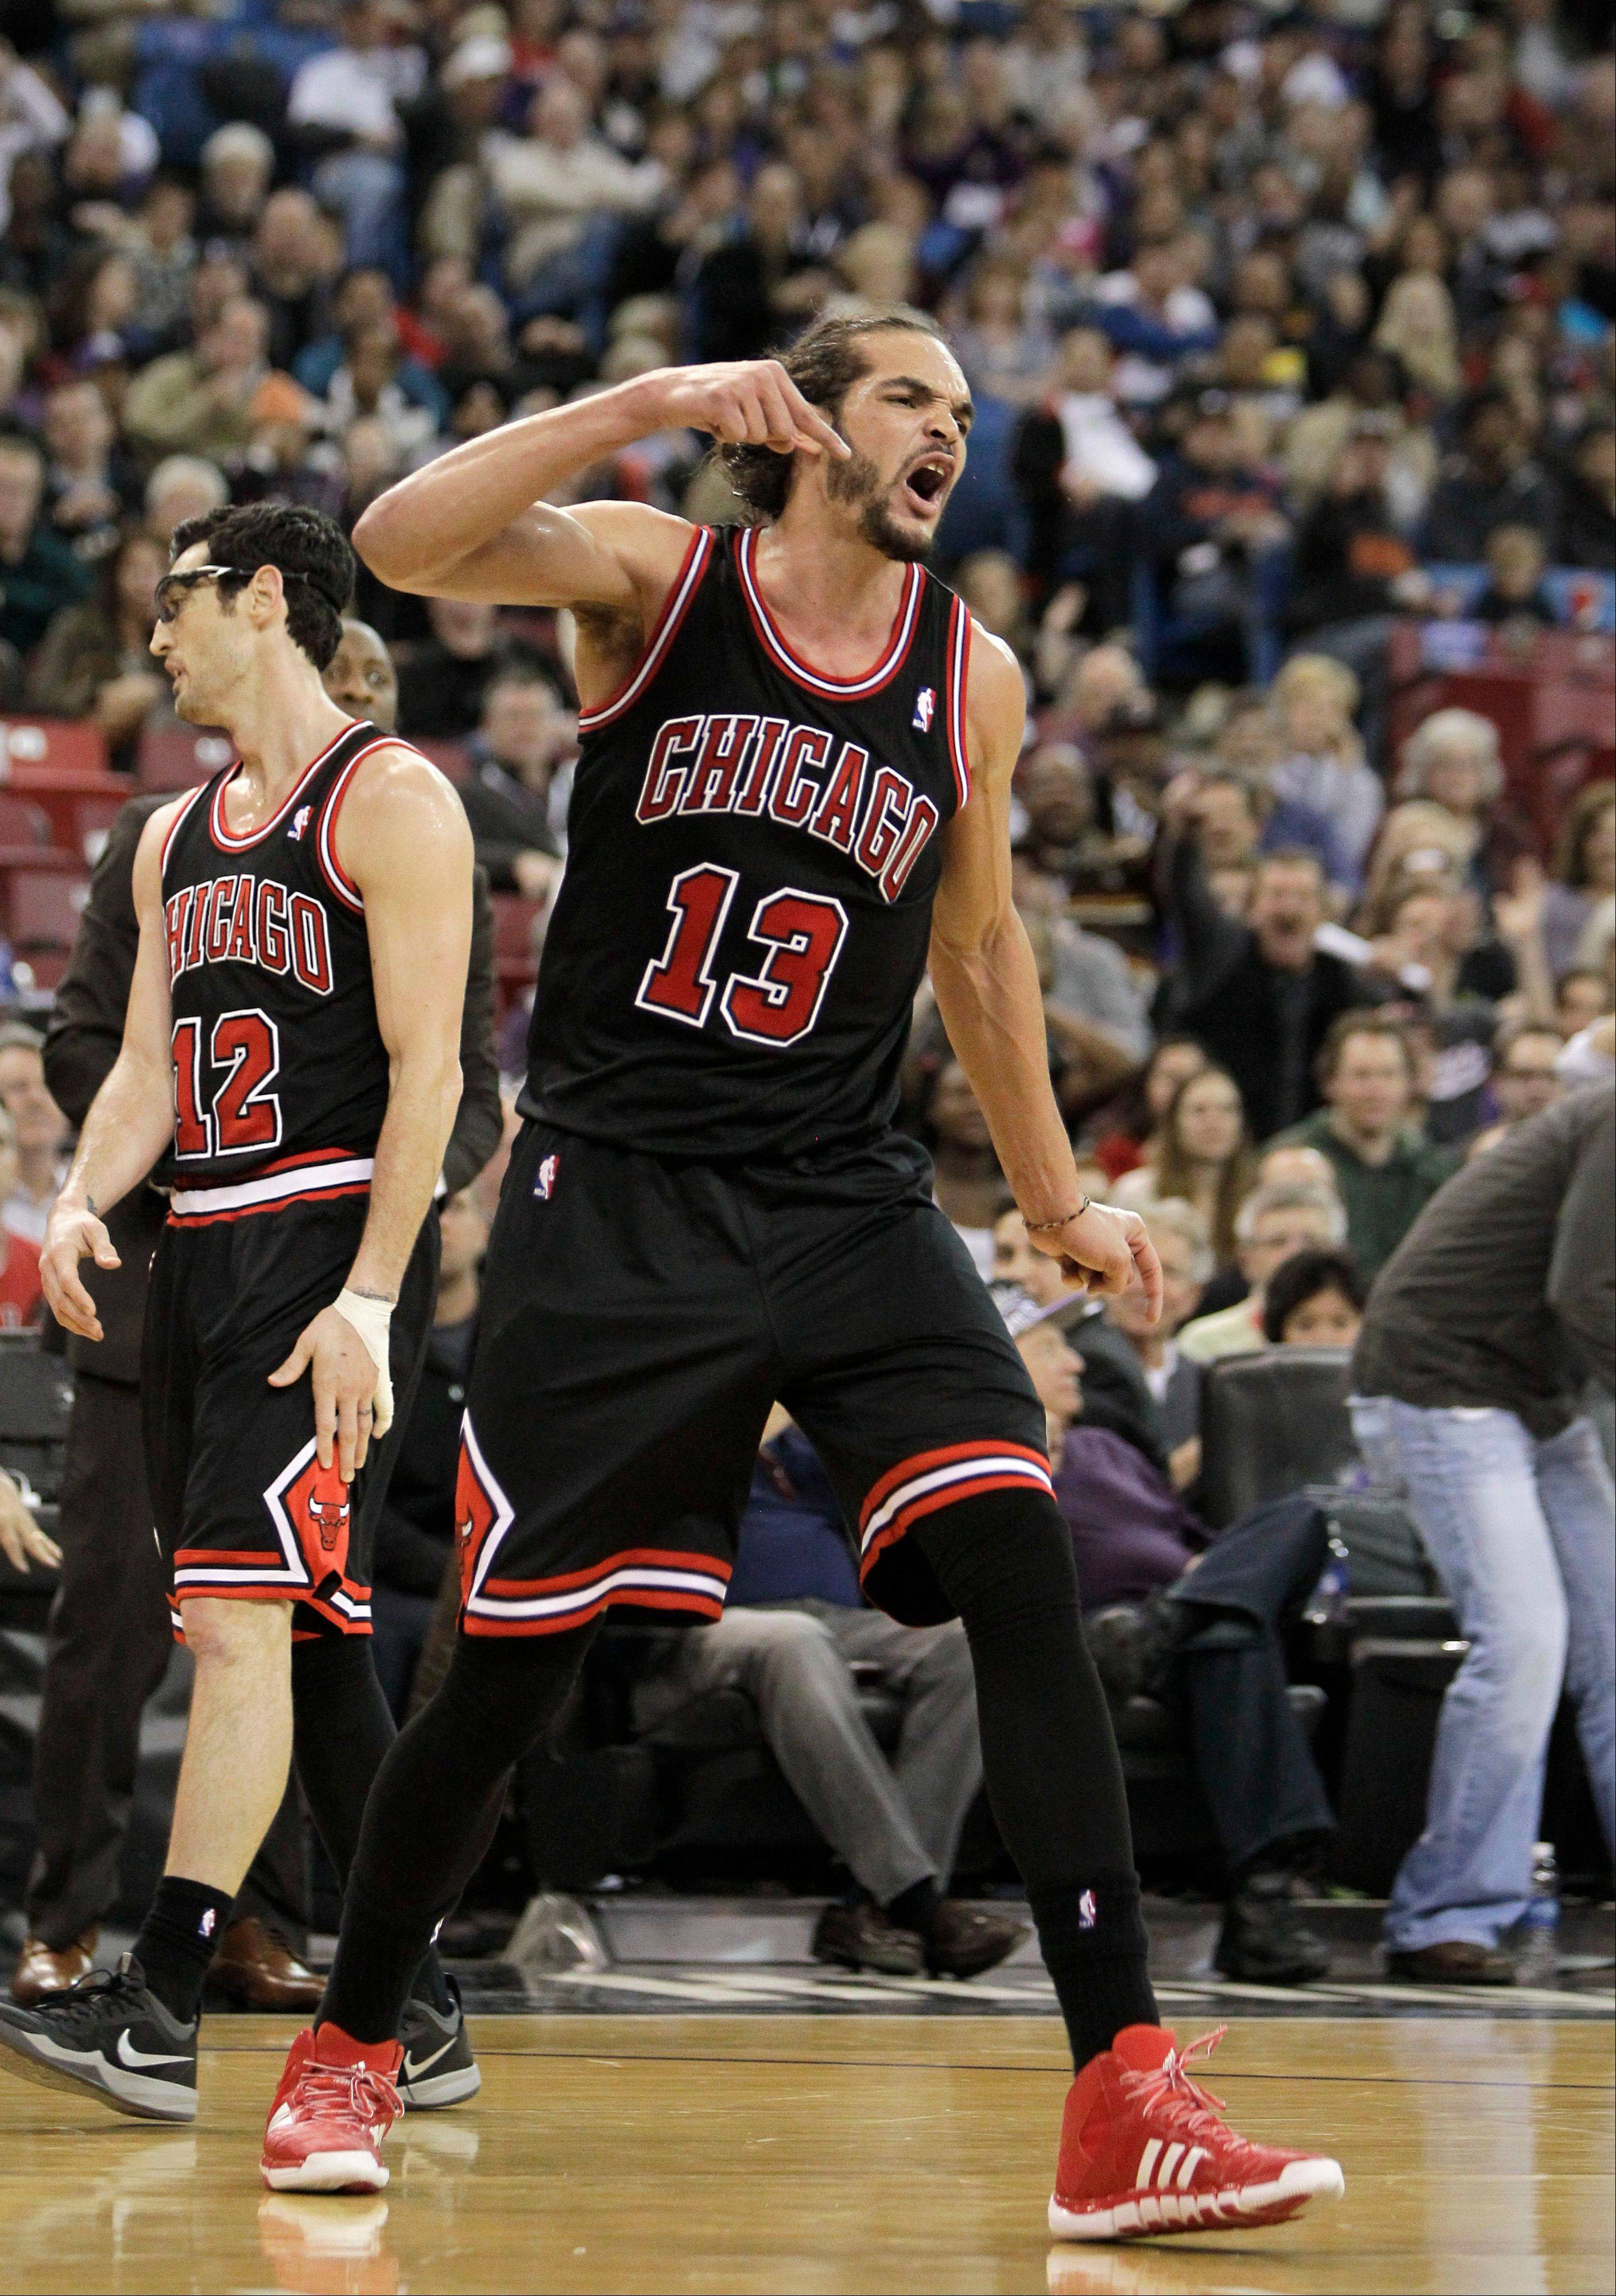 Bulls center Joakim Noah shouts after getting his second technical foul and was ejected from this game against the Sacramento Kings on Monday. Noah apologized and was later fined $15,000 by league officials.